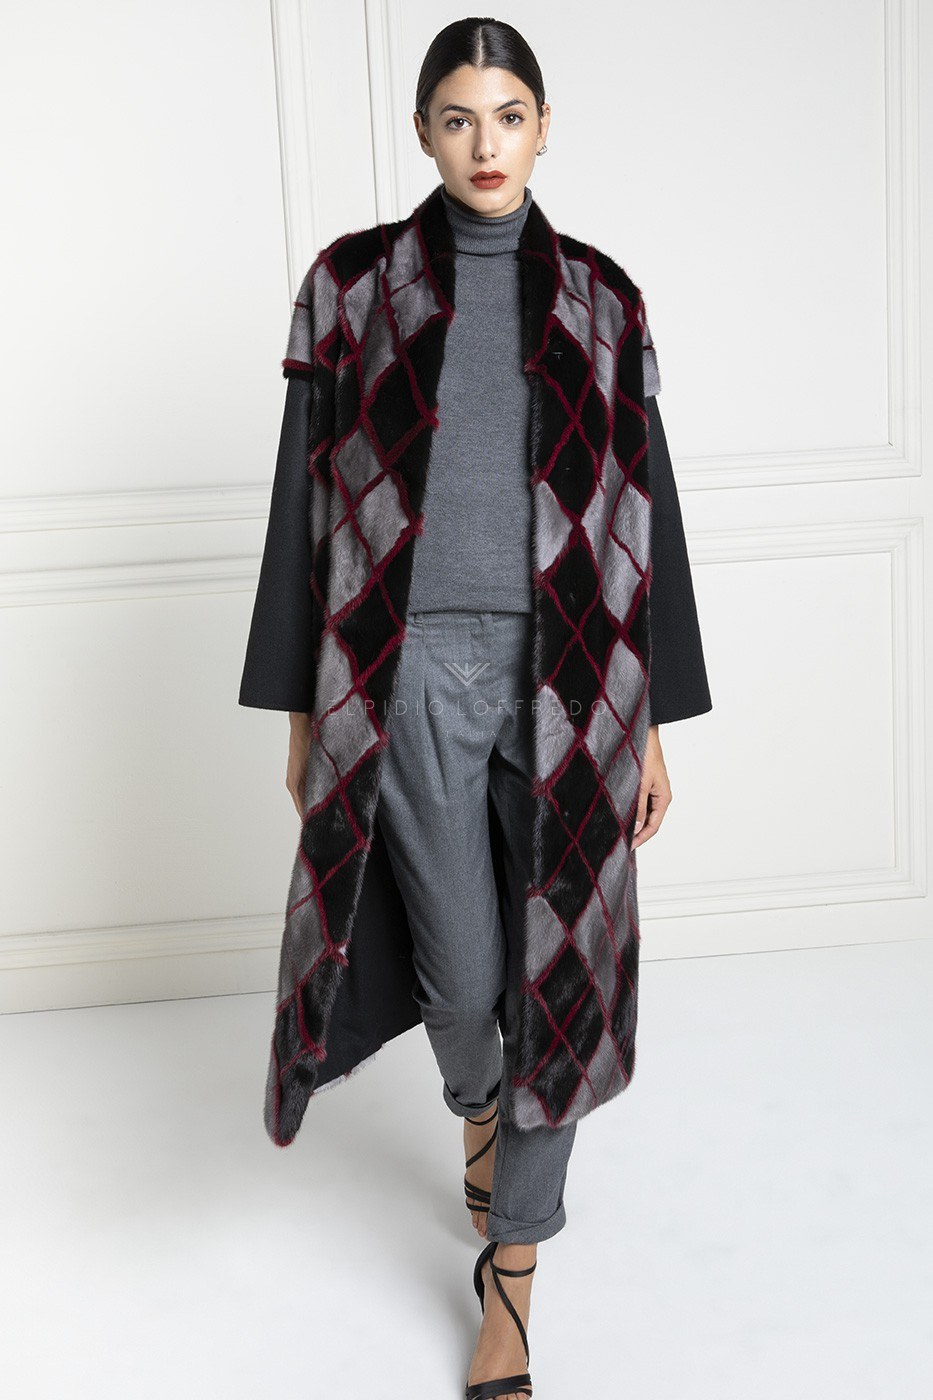 Cashmere Loro Piana Coat with Mink Fur and Plat Collar - Length 110 cm